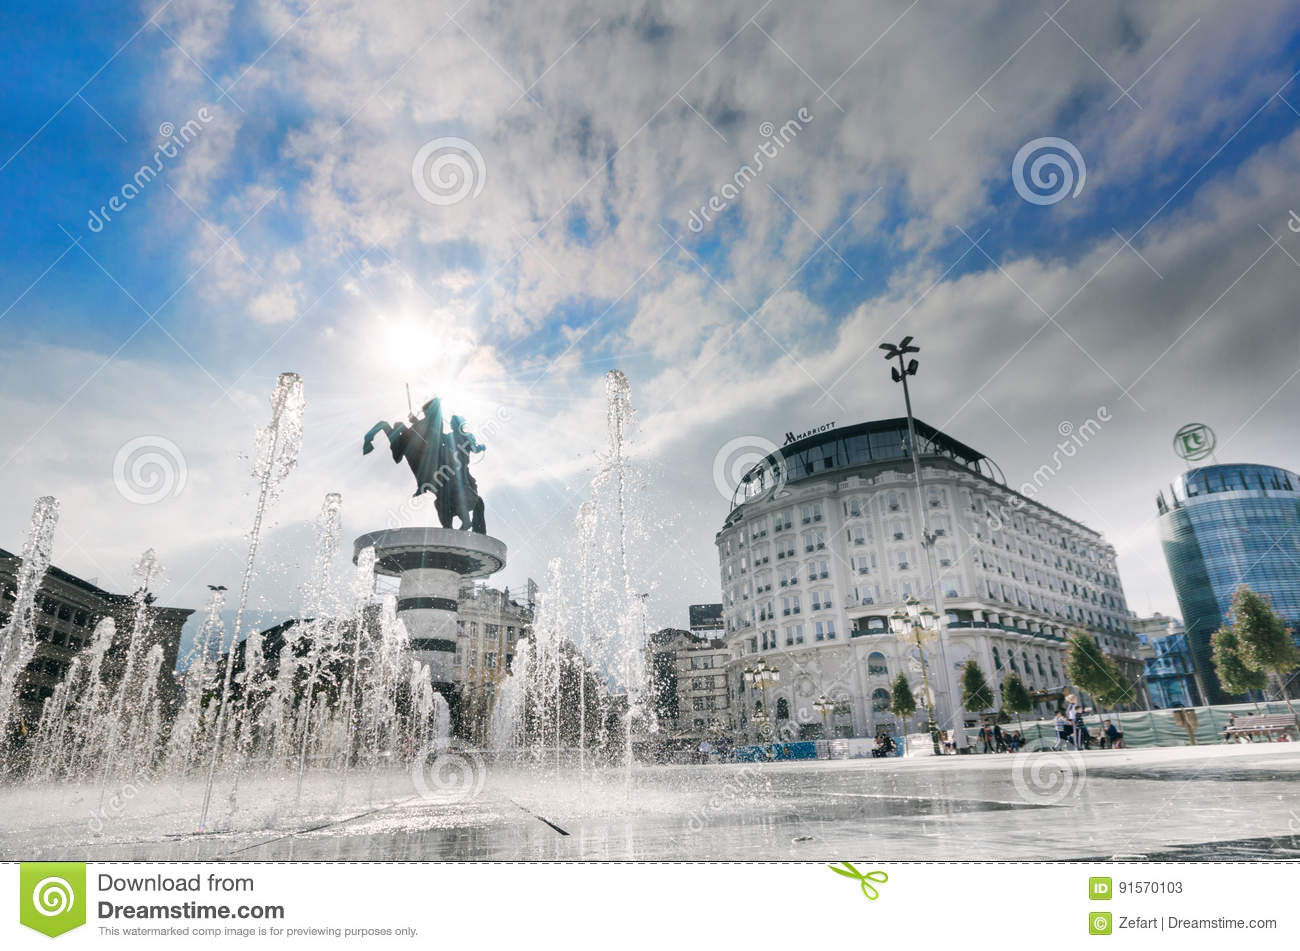 Square below the Warrior on a Horse Monument of Skopje